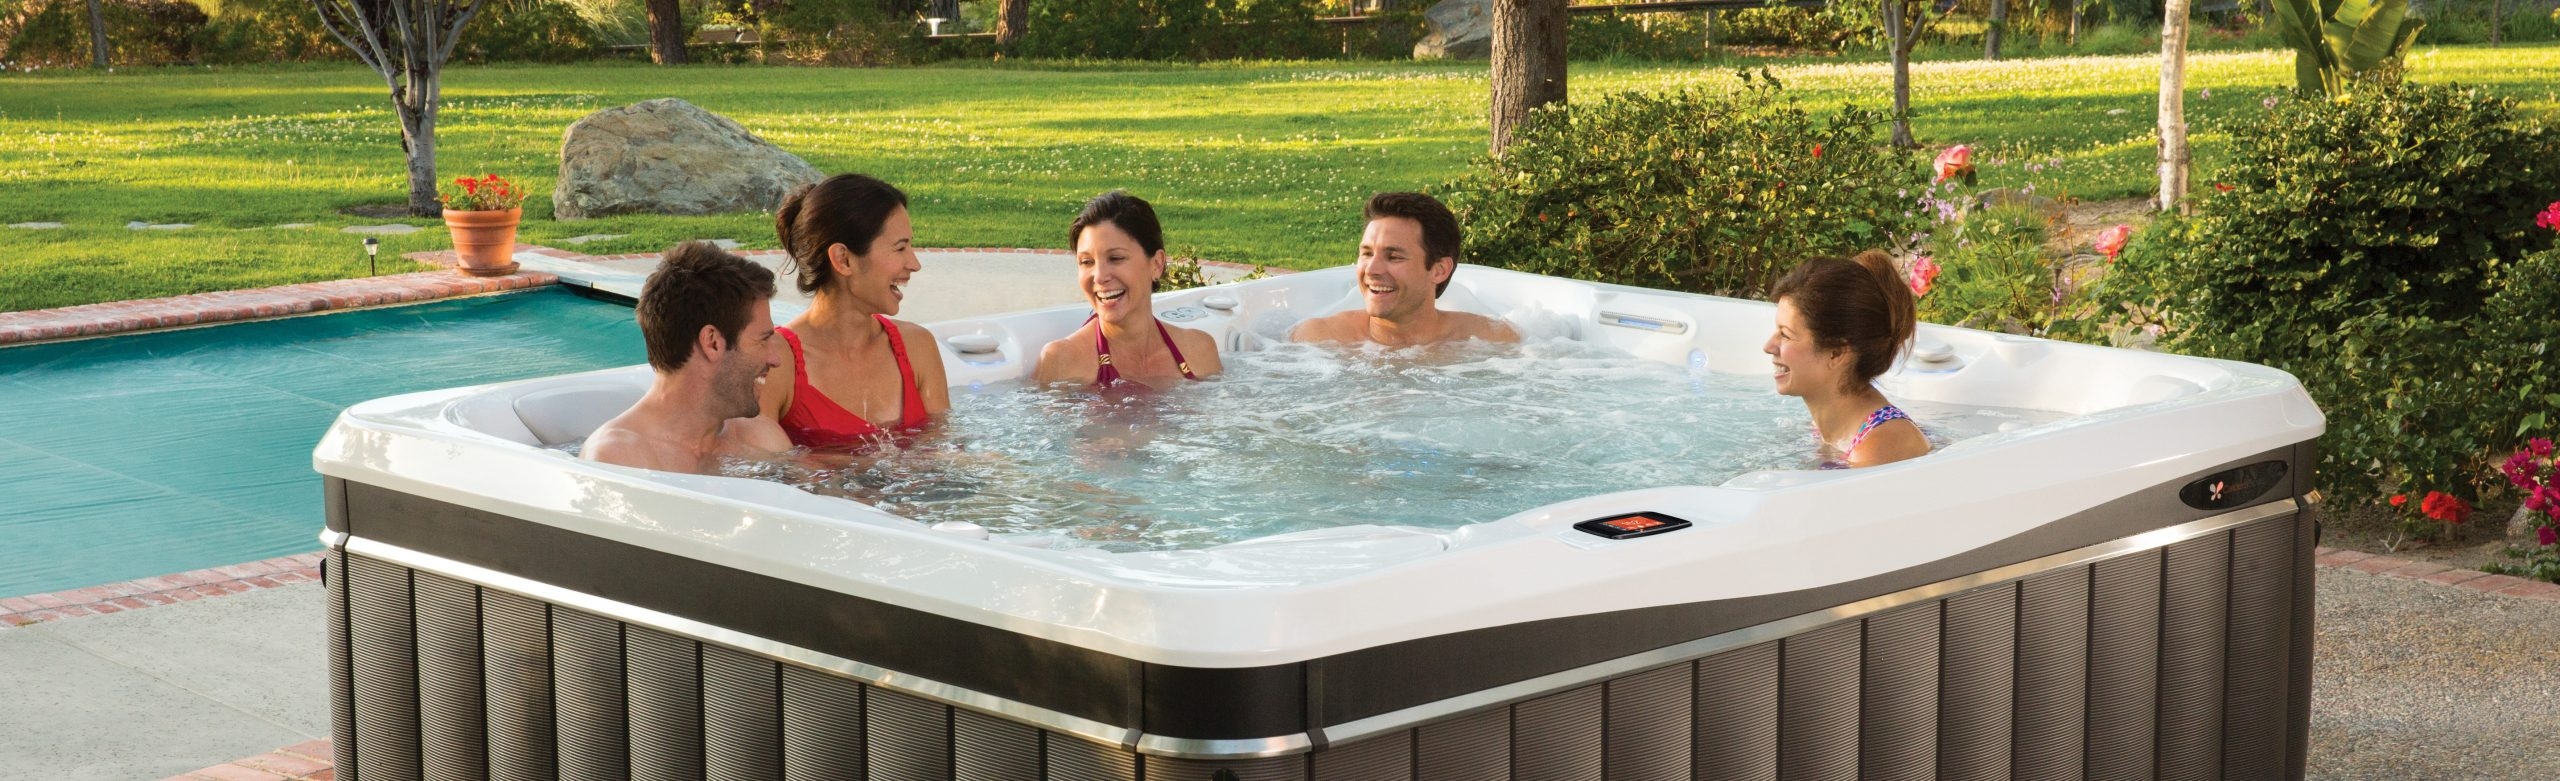 Hot Tub Entertainment For Your Family